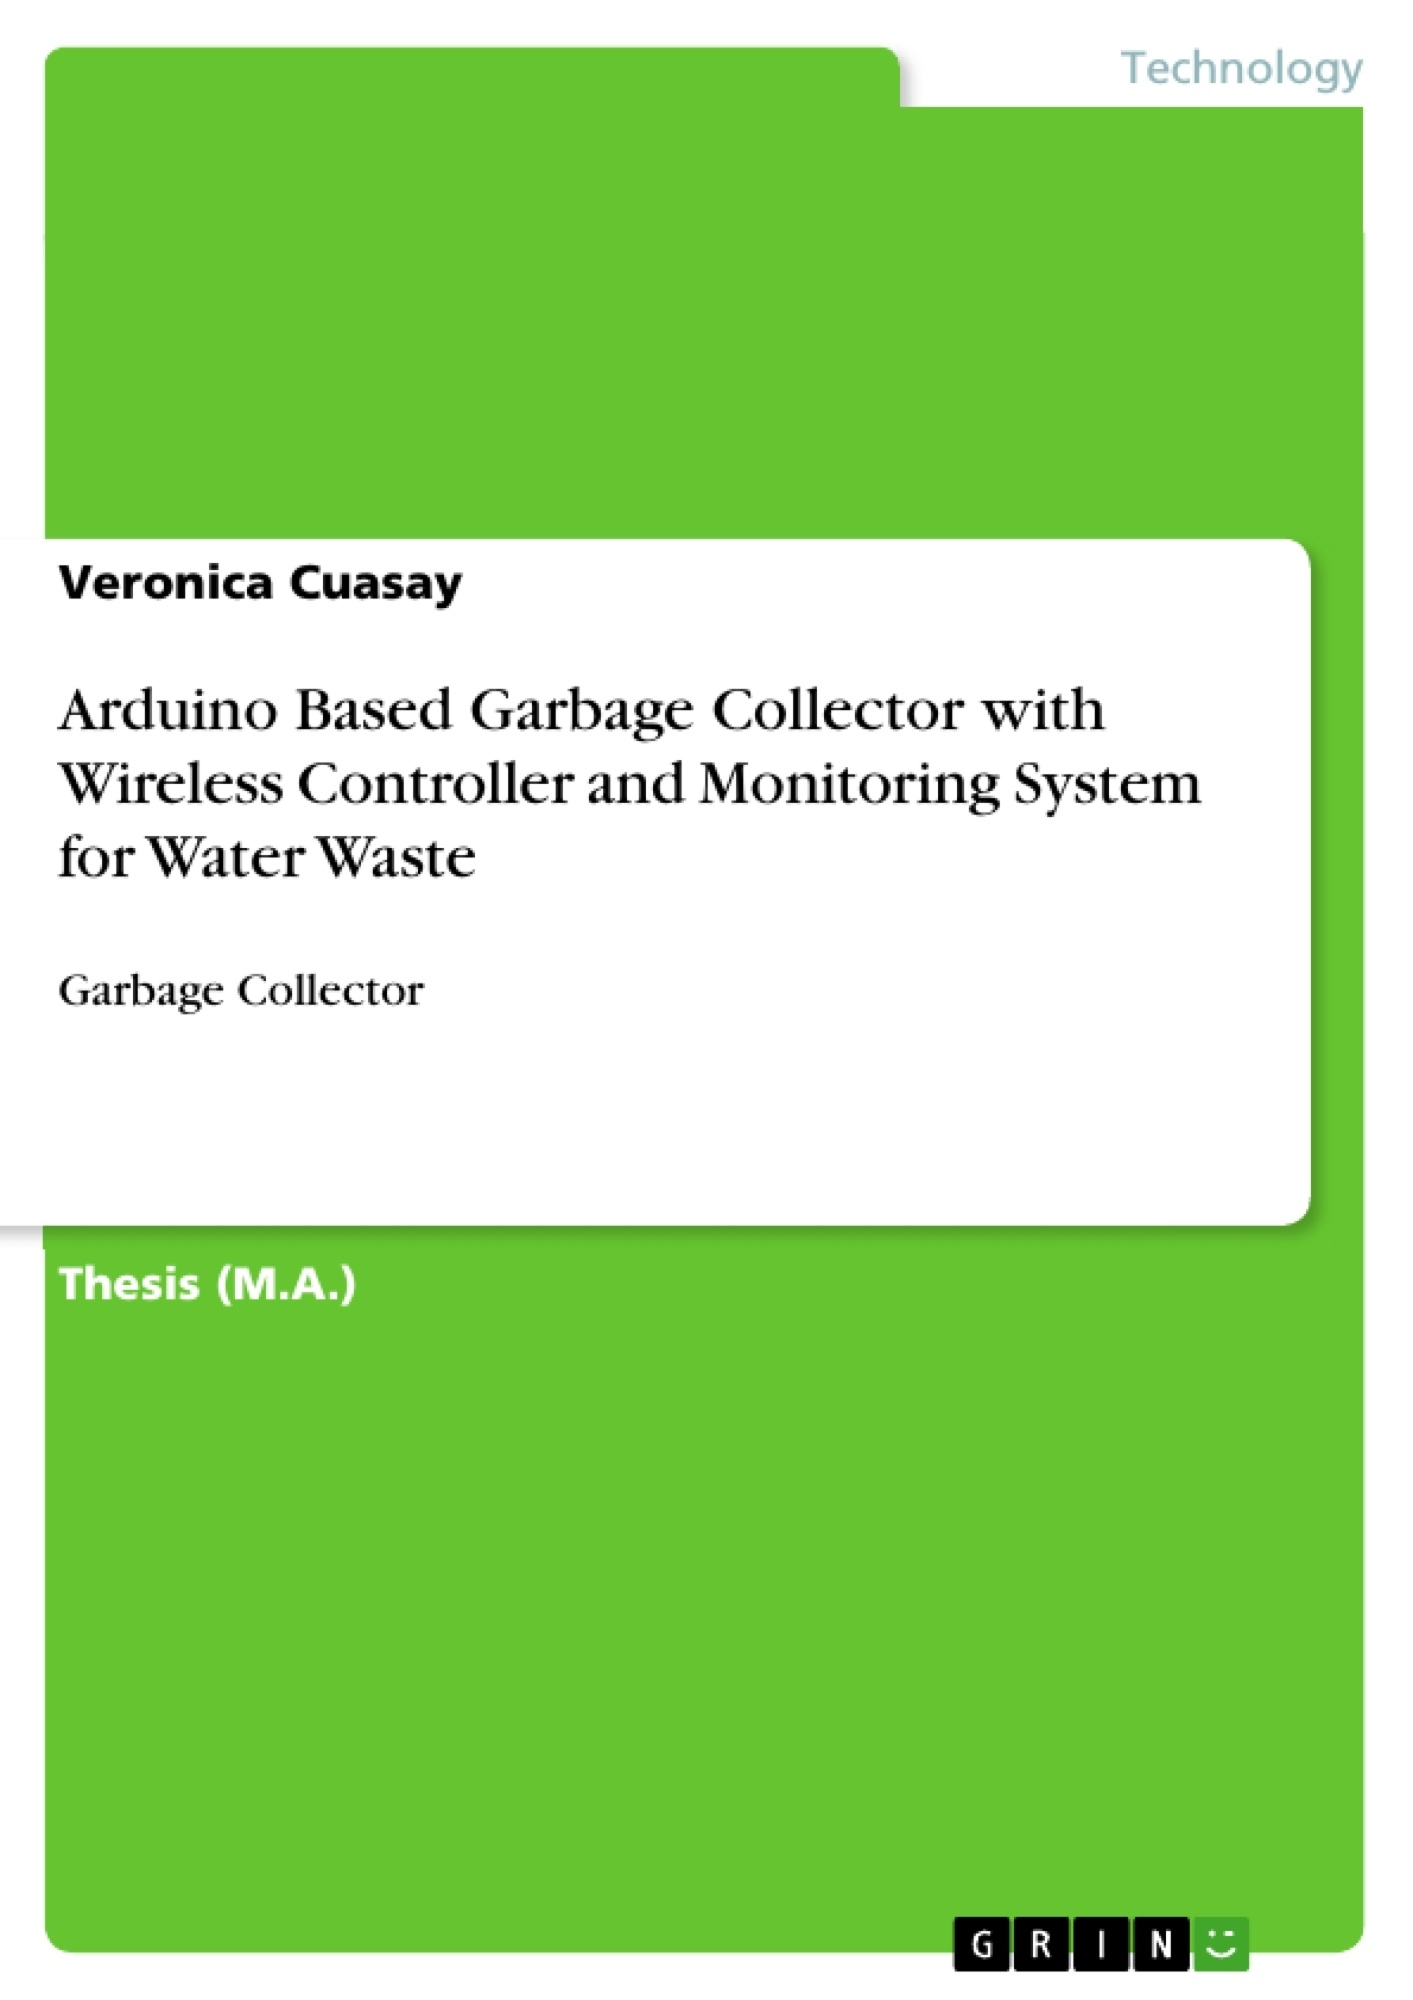 Title: Arduino Based Garbage Collector with Wireless Controller and Monitoring System for Water Waste